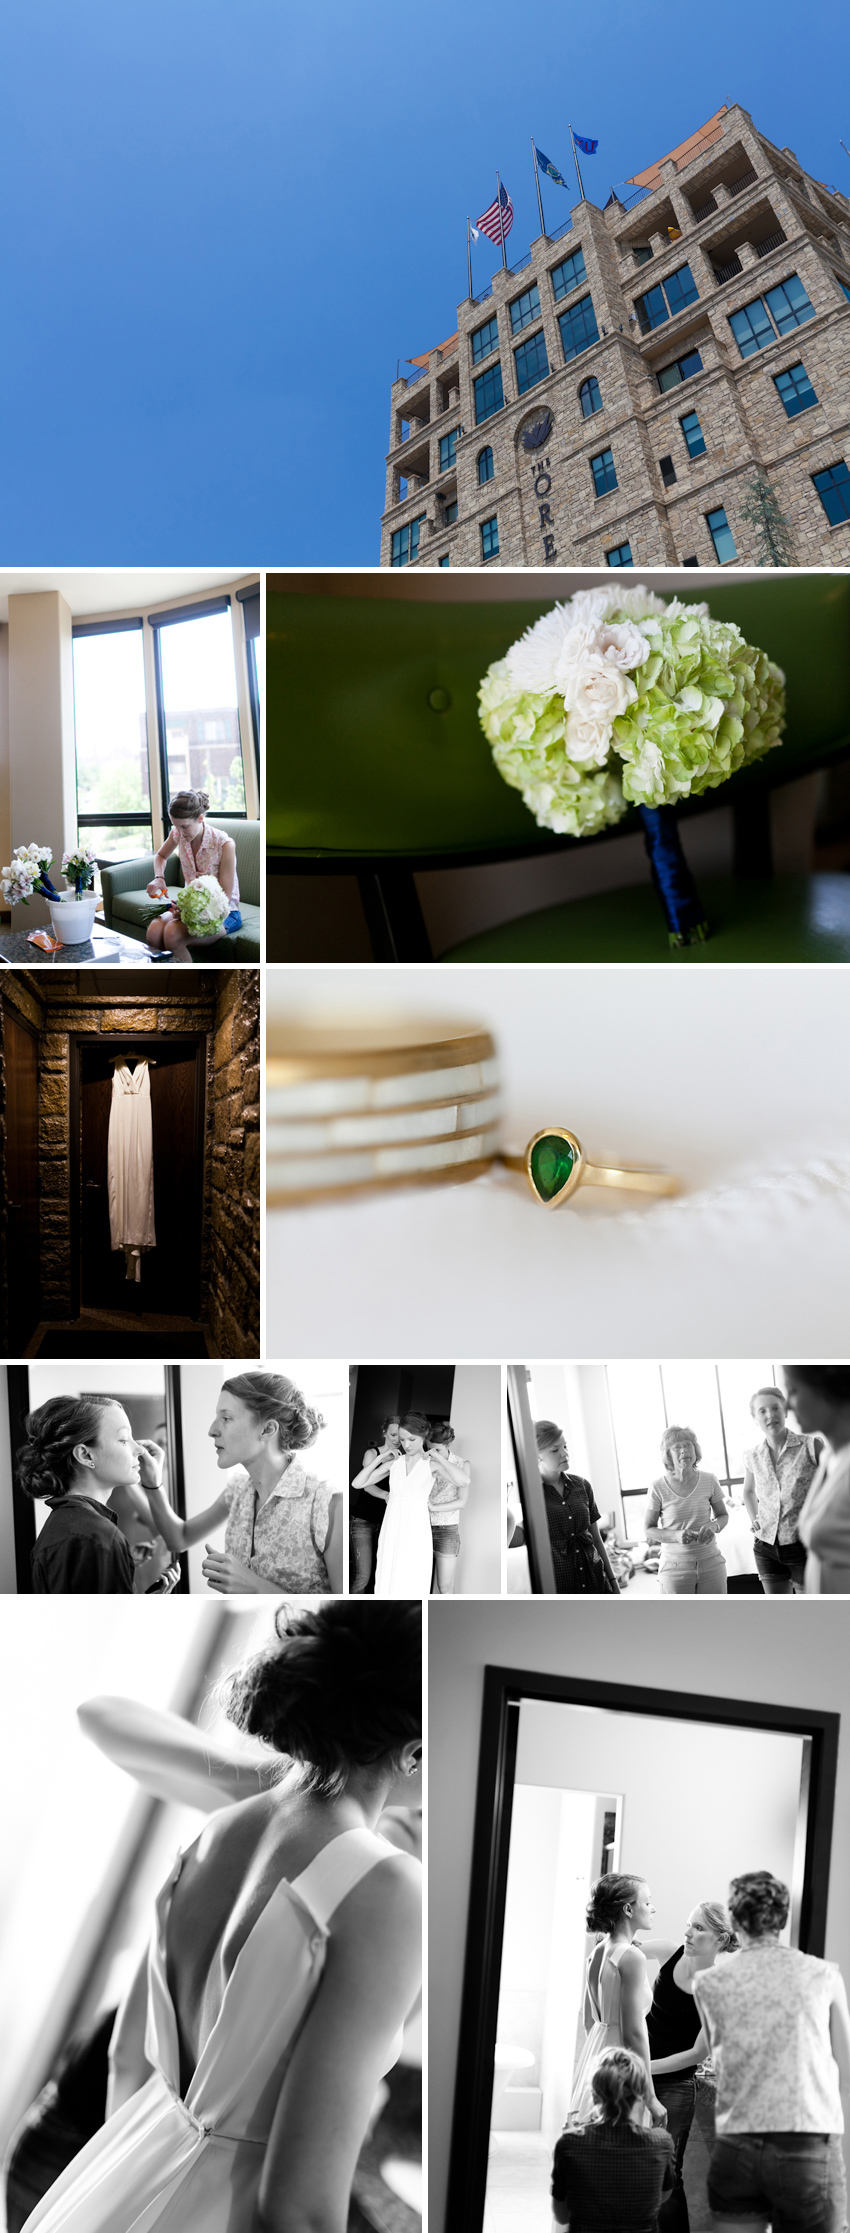 Kansas City/Lawrence wedding photographer Darbi G. Photography